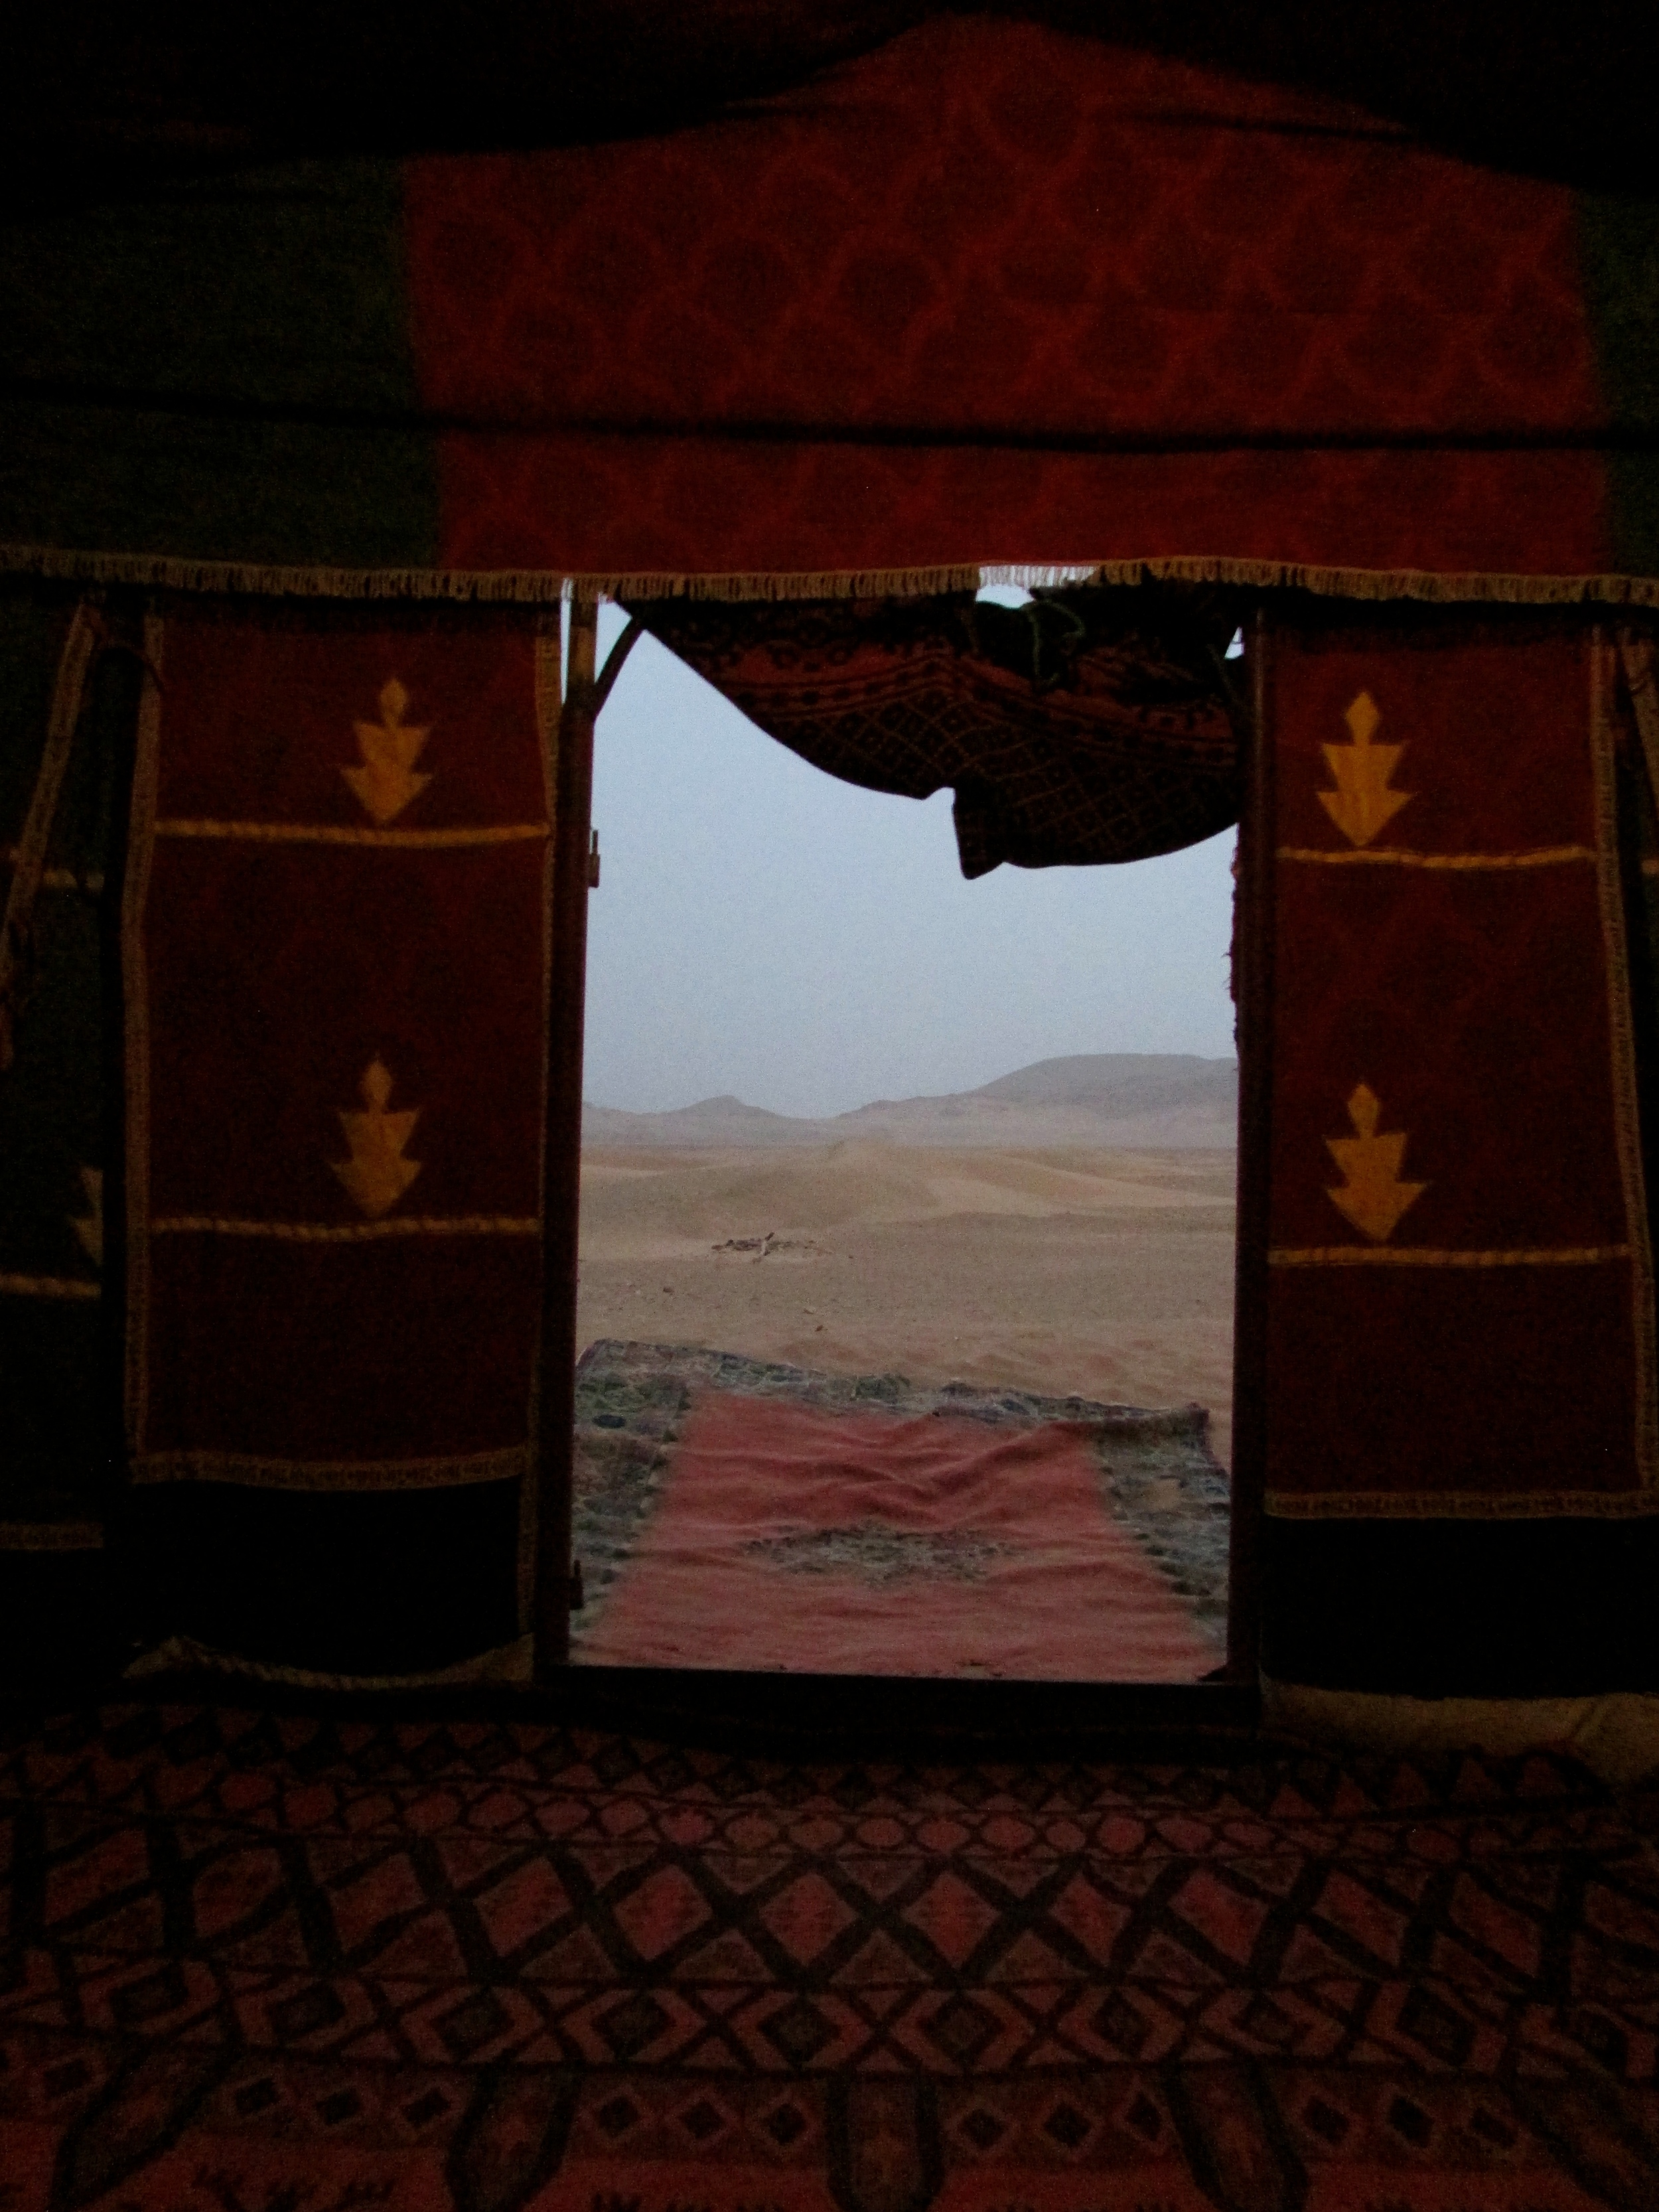 The view from my bed in the Bedouin tent.